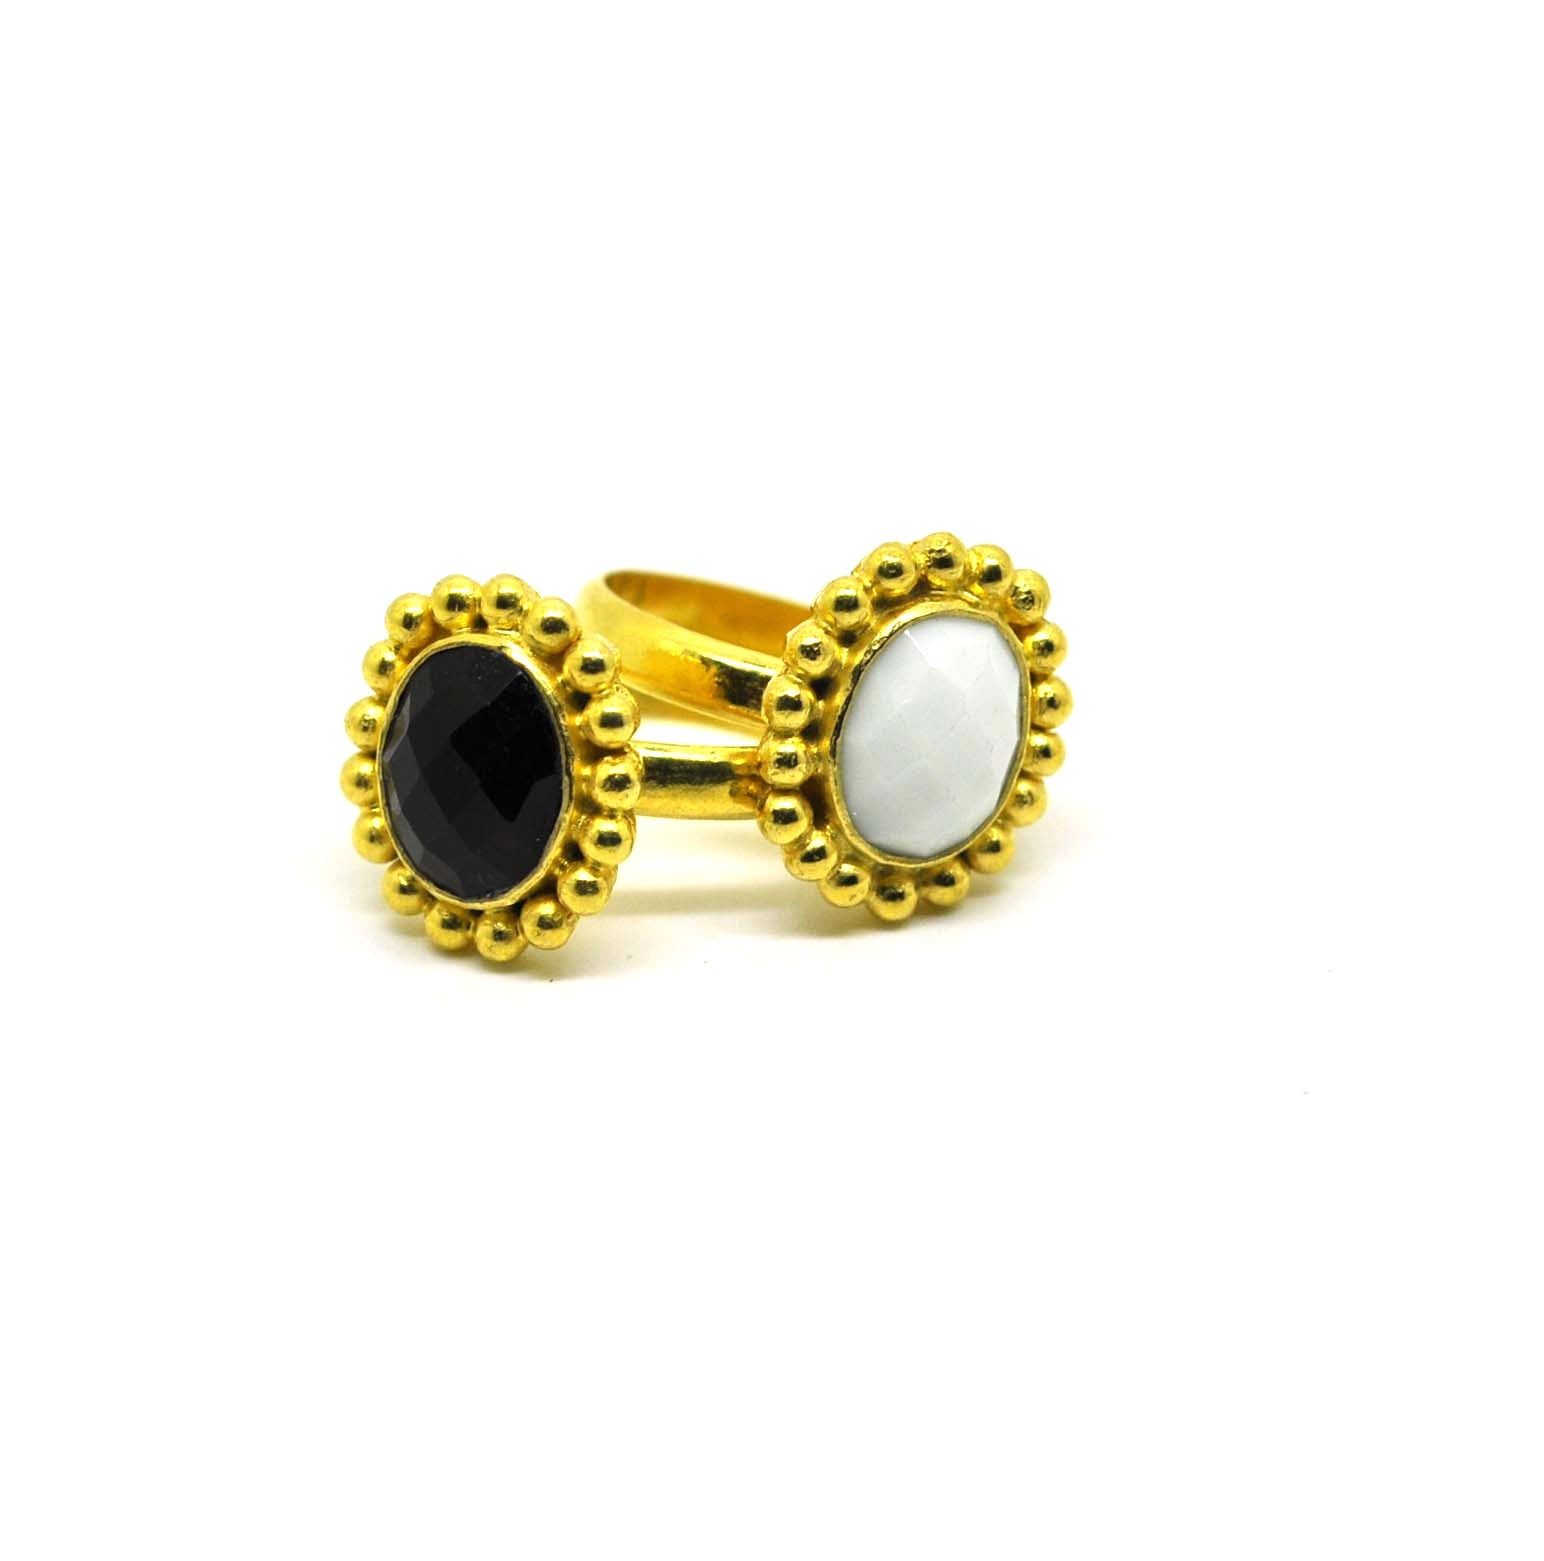 ON SALE Black onyx ring